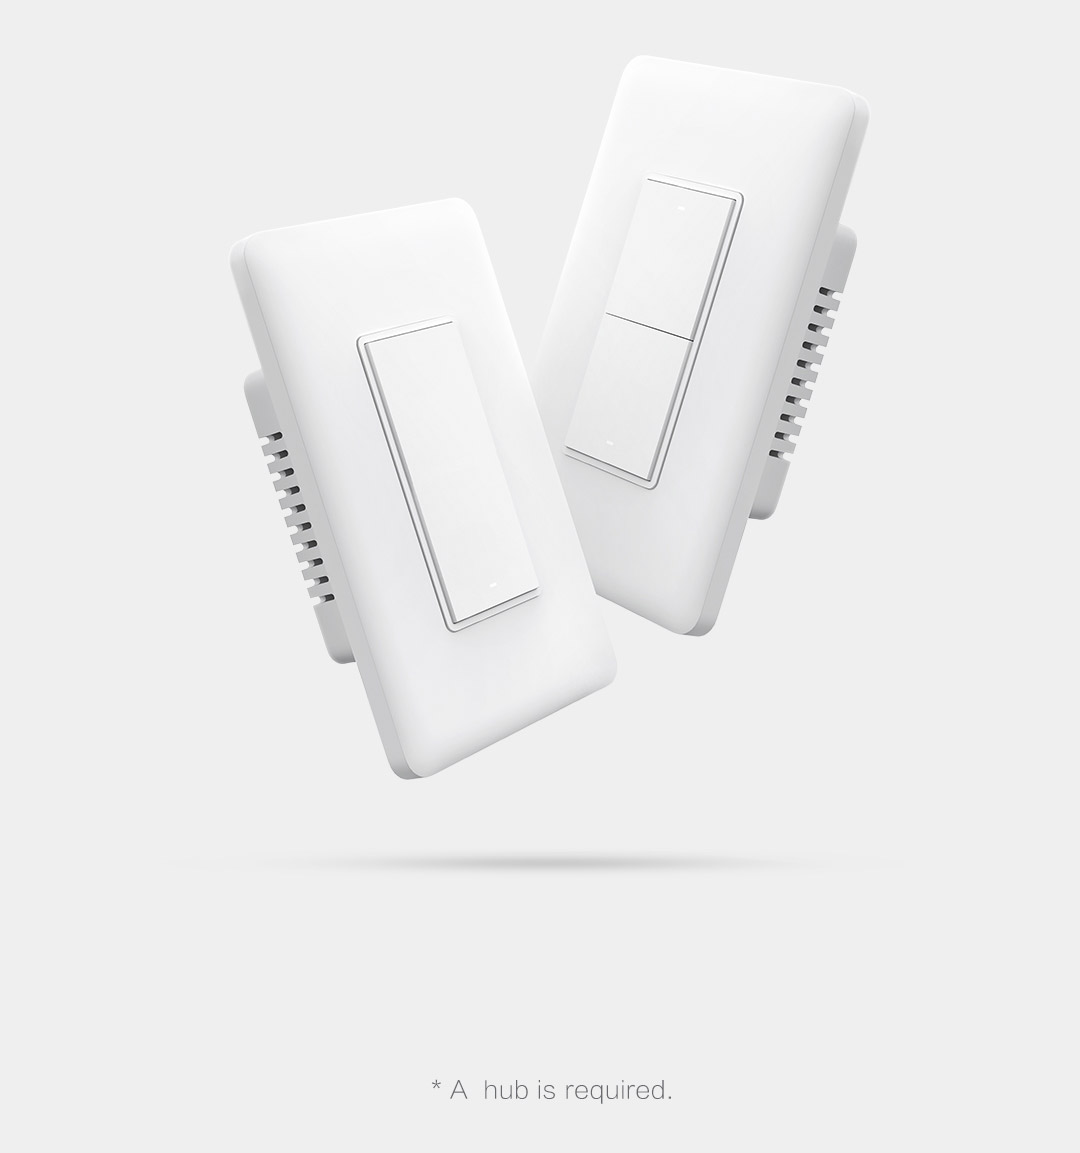 Smart home light swtich supporting remote control, engergy monitoring, overload protection voice control and automation.